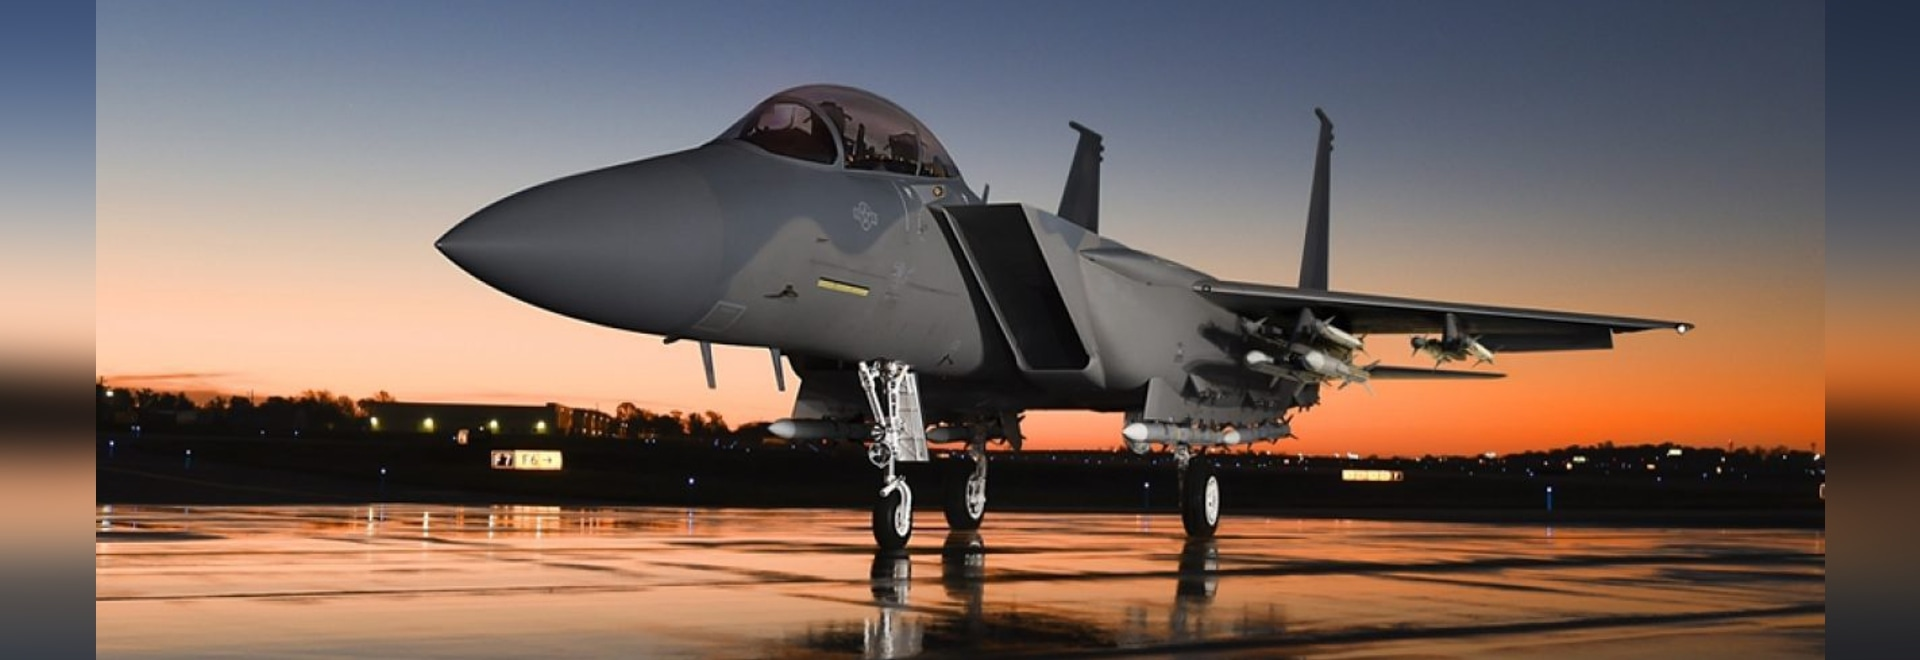 Elbit Systems selected to supply structural components for the F-15